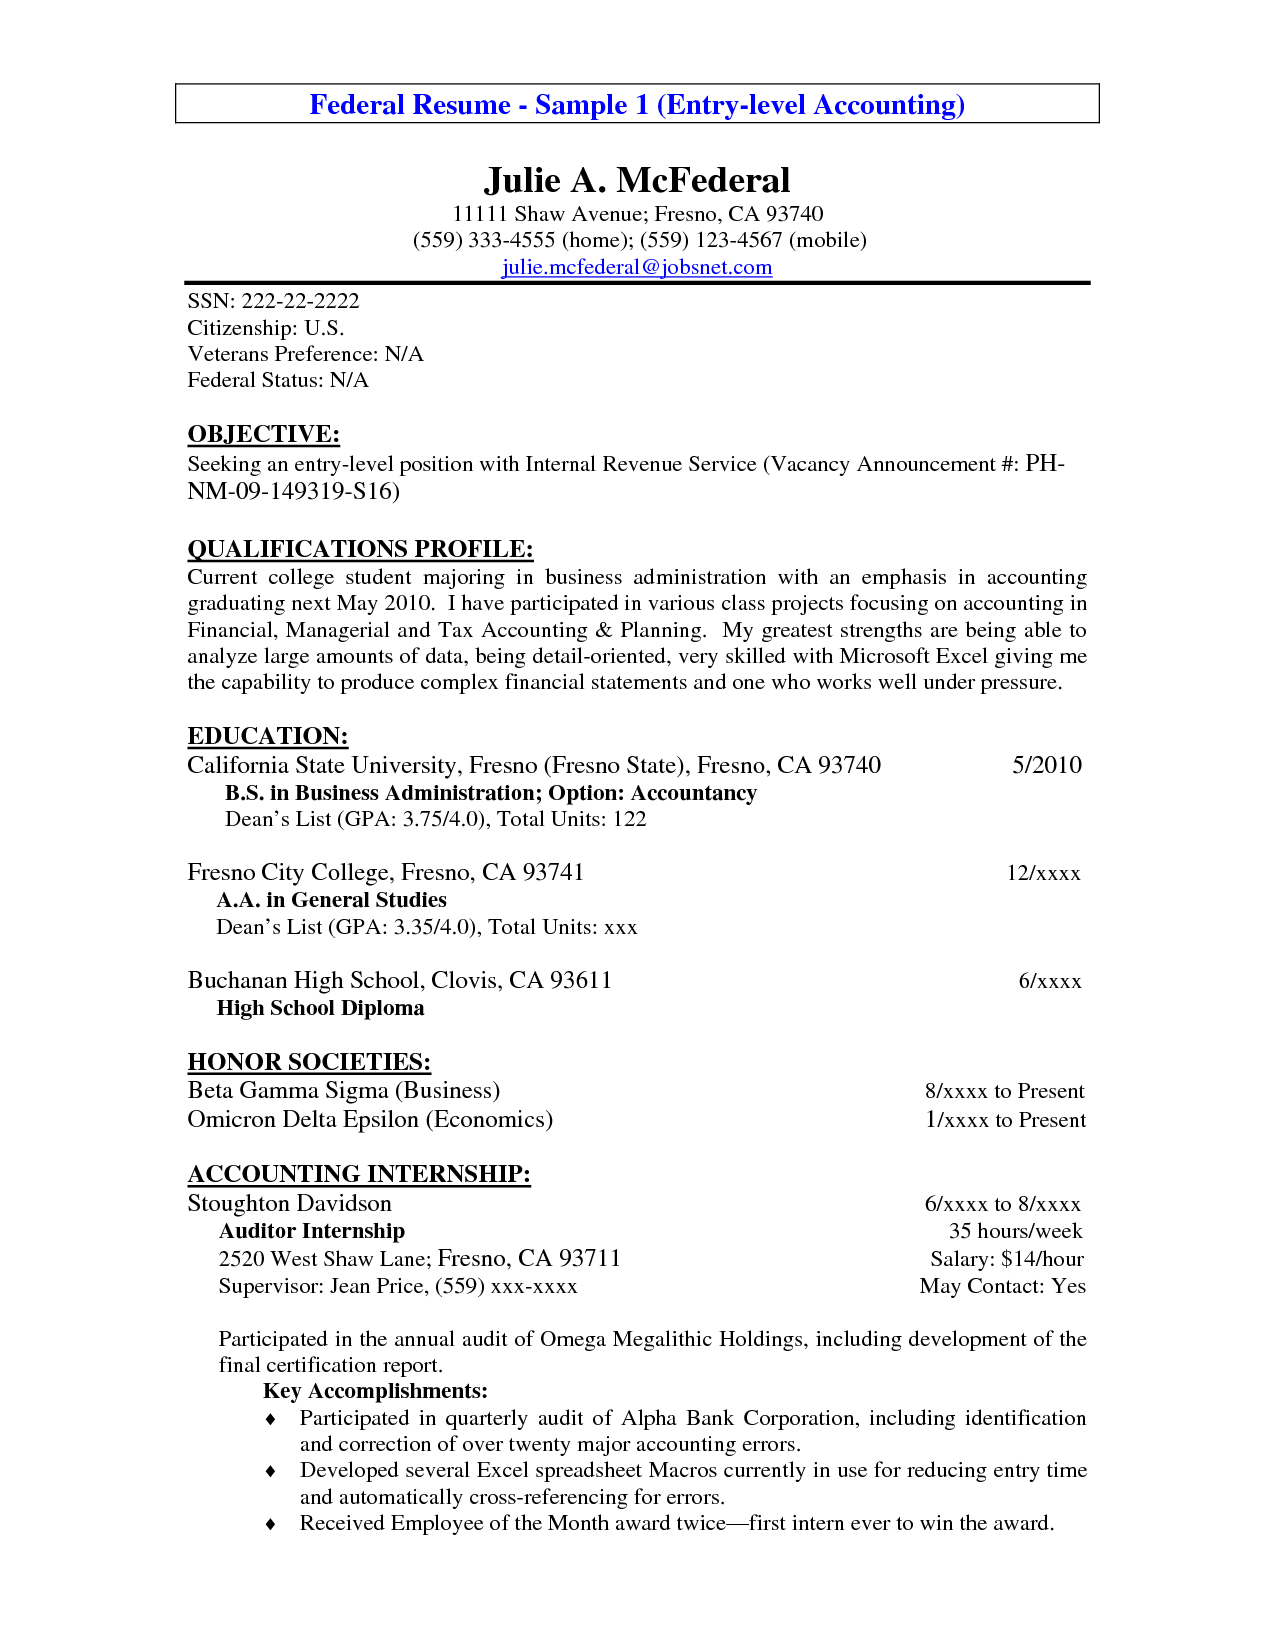 Best Way To Write An Objective For A Resume Pin By Resume Objectives On Accounting Resume Objectives